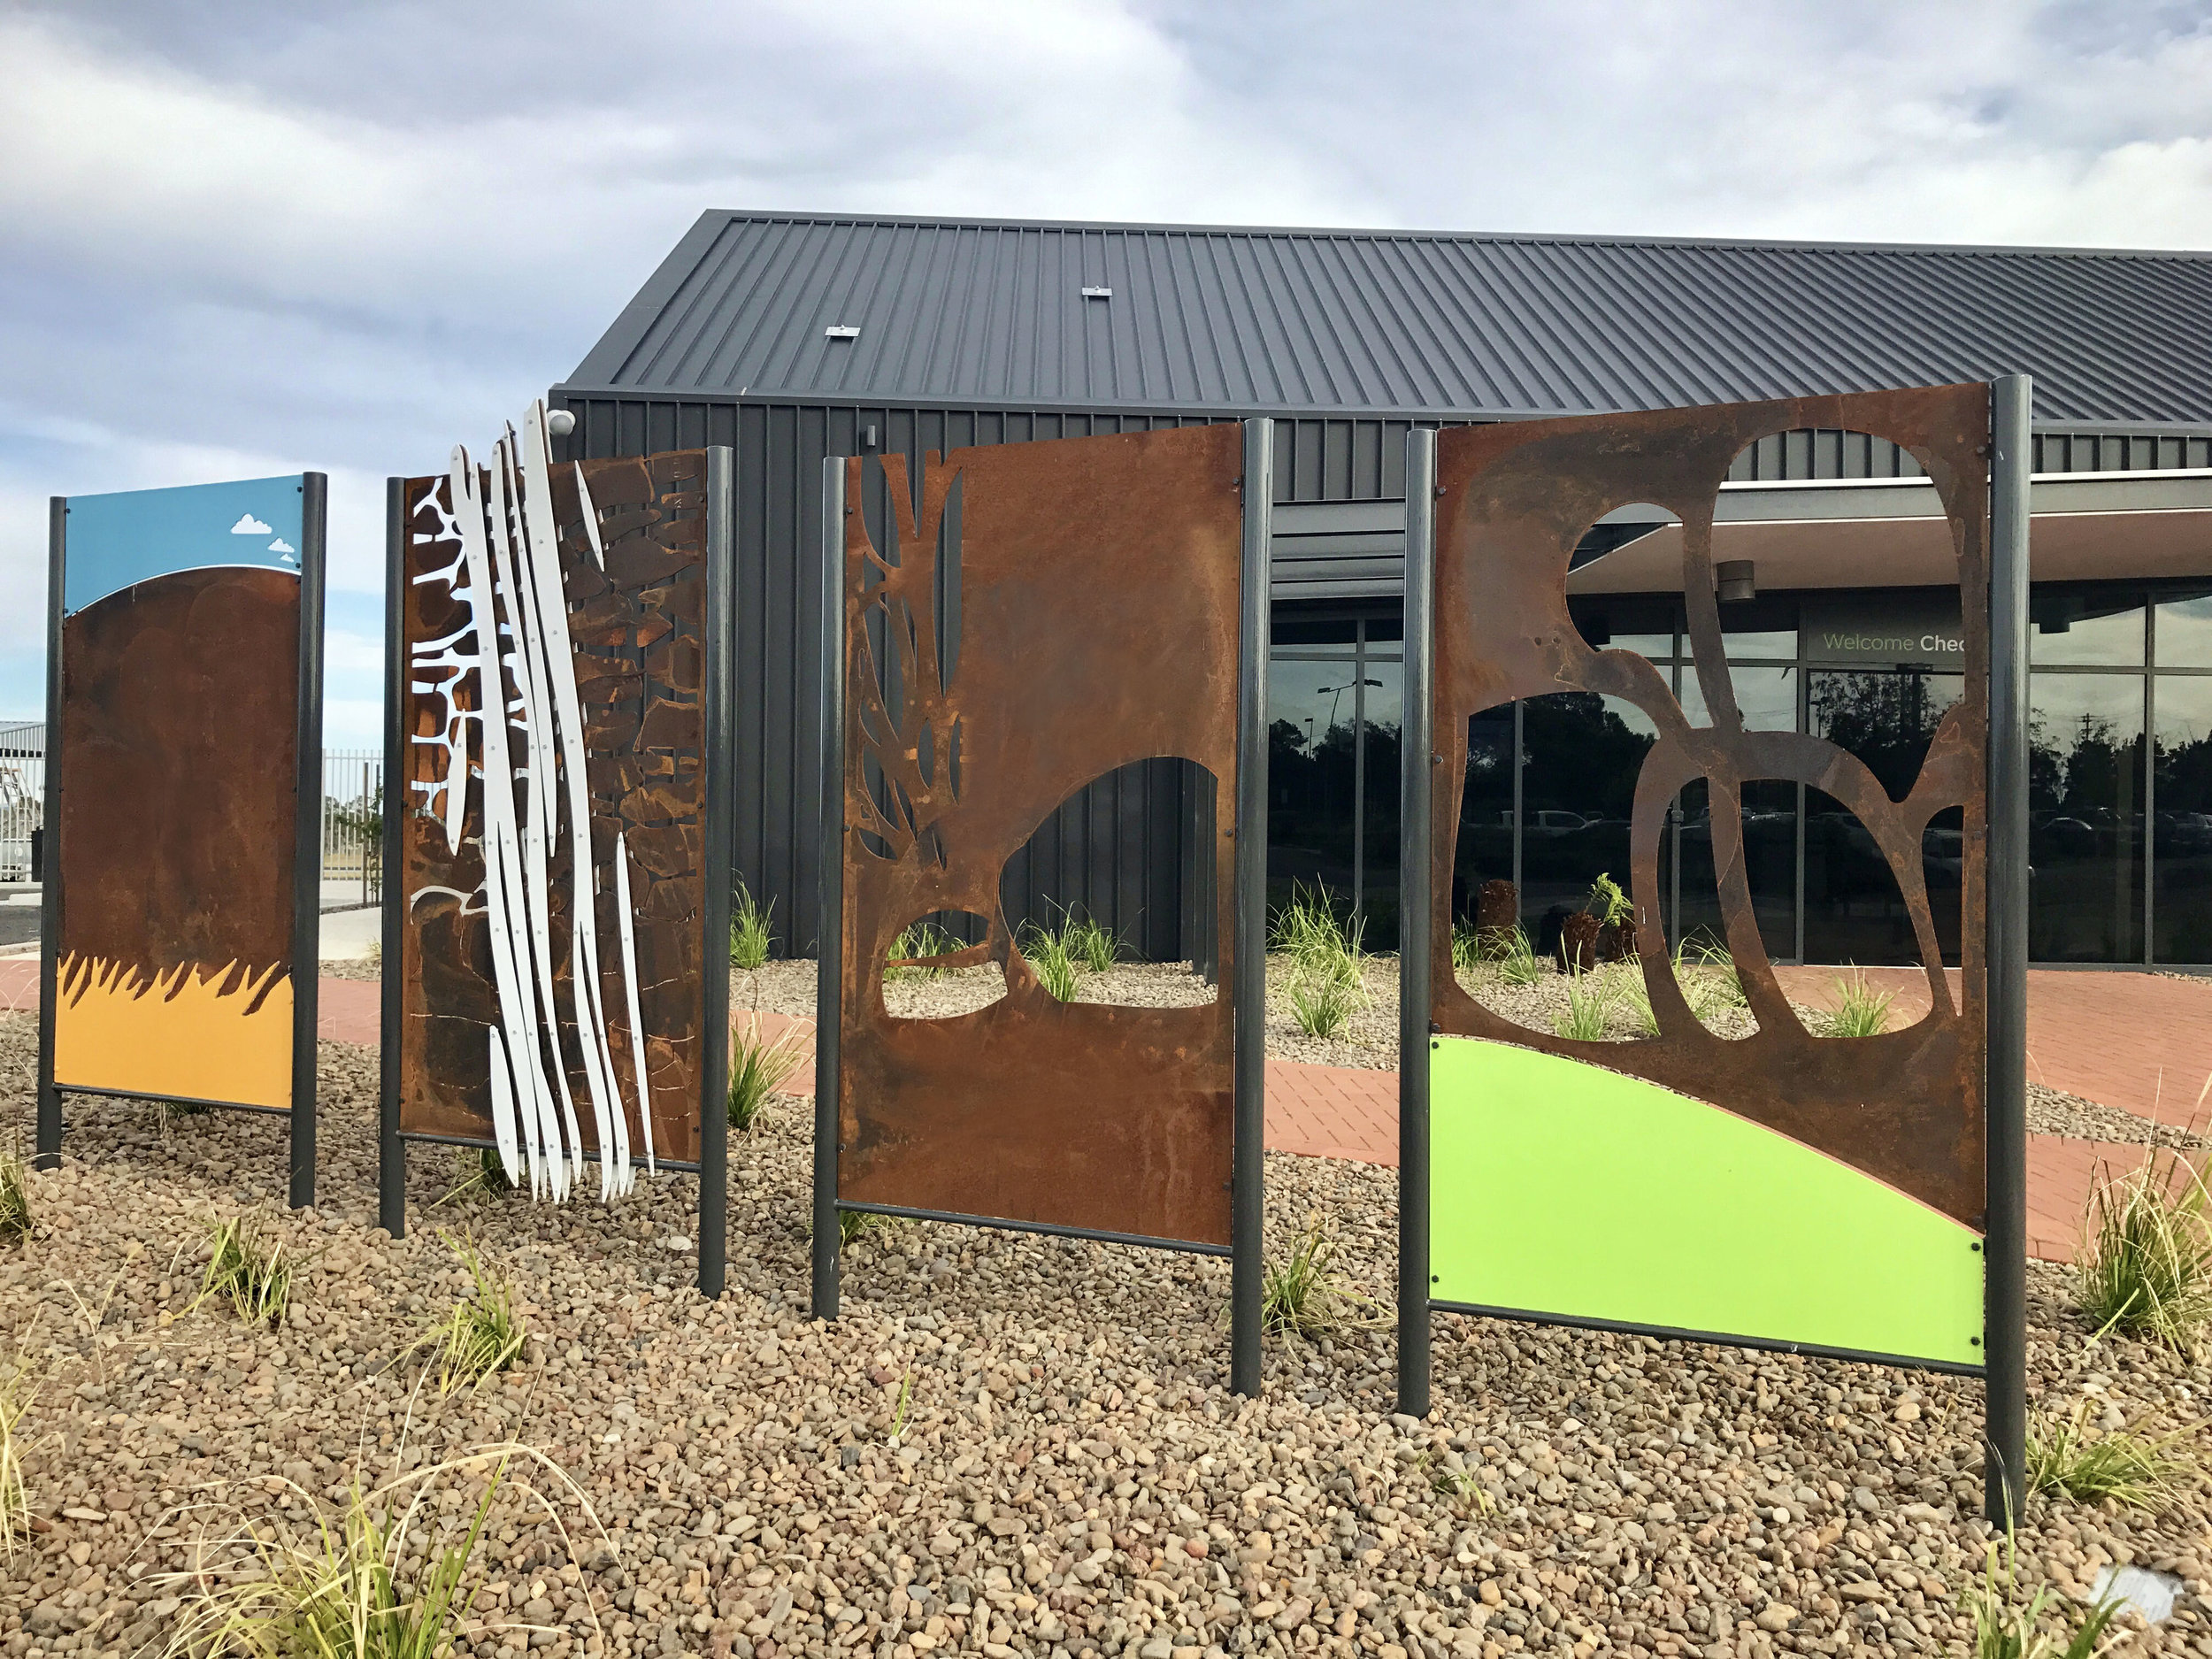 Under the Big Sky  was finally installed in front of the new Armidale Airport annex late 2017.